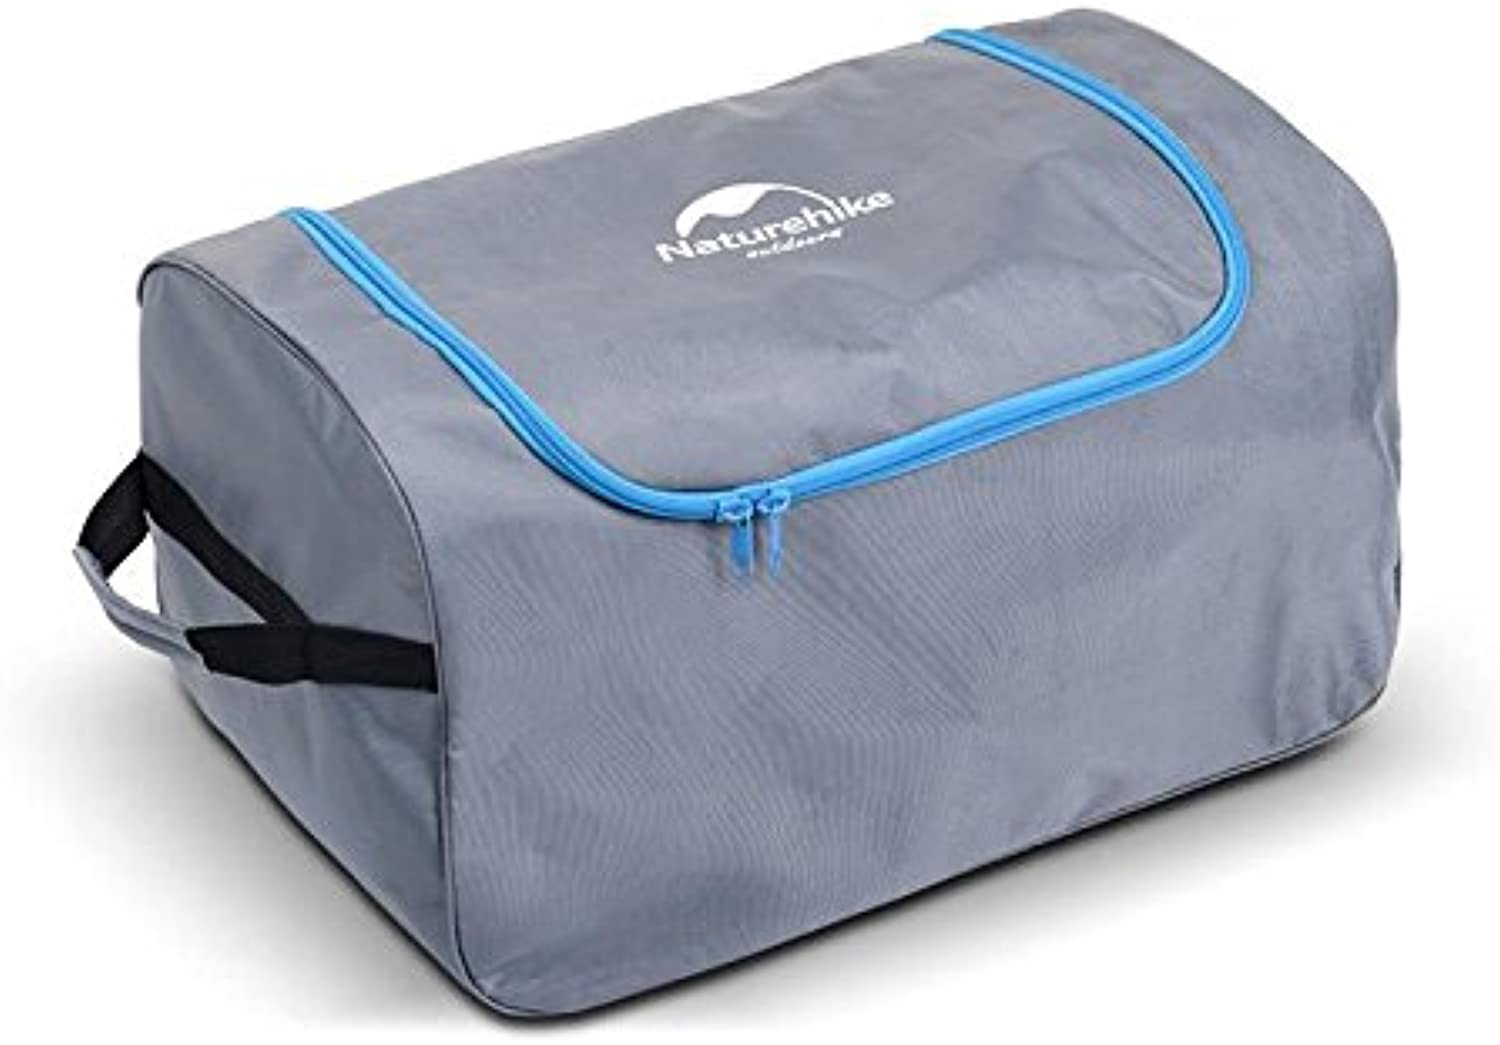 Bazaar Naturehike Camping Travel Suitcase Storage Bag Pouch Large Capacity Packing Case For Outdoors